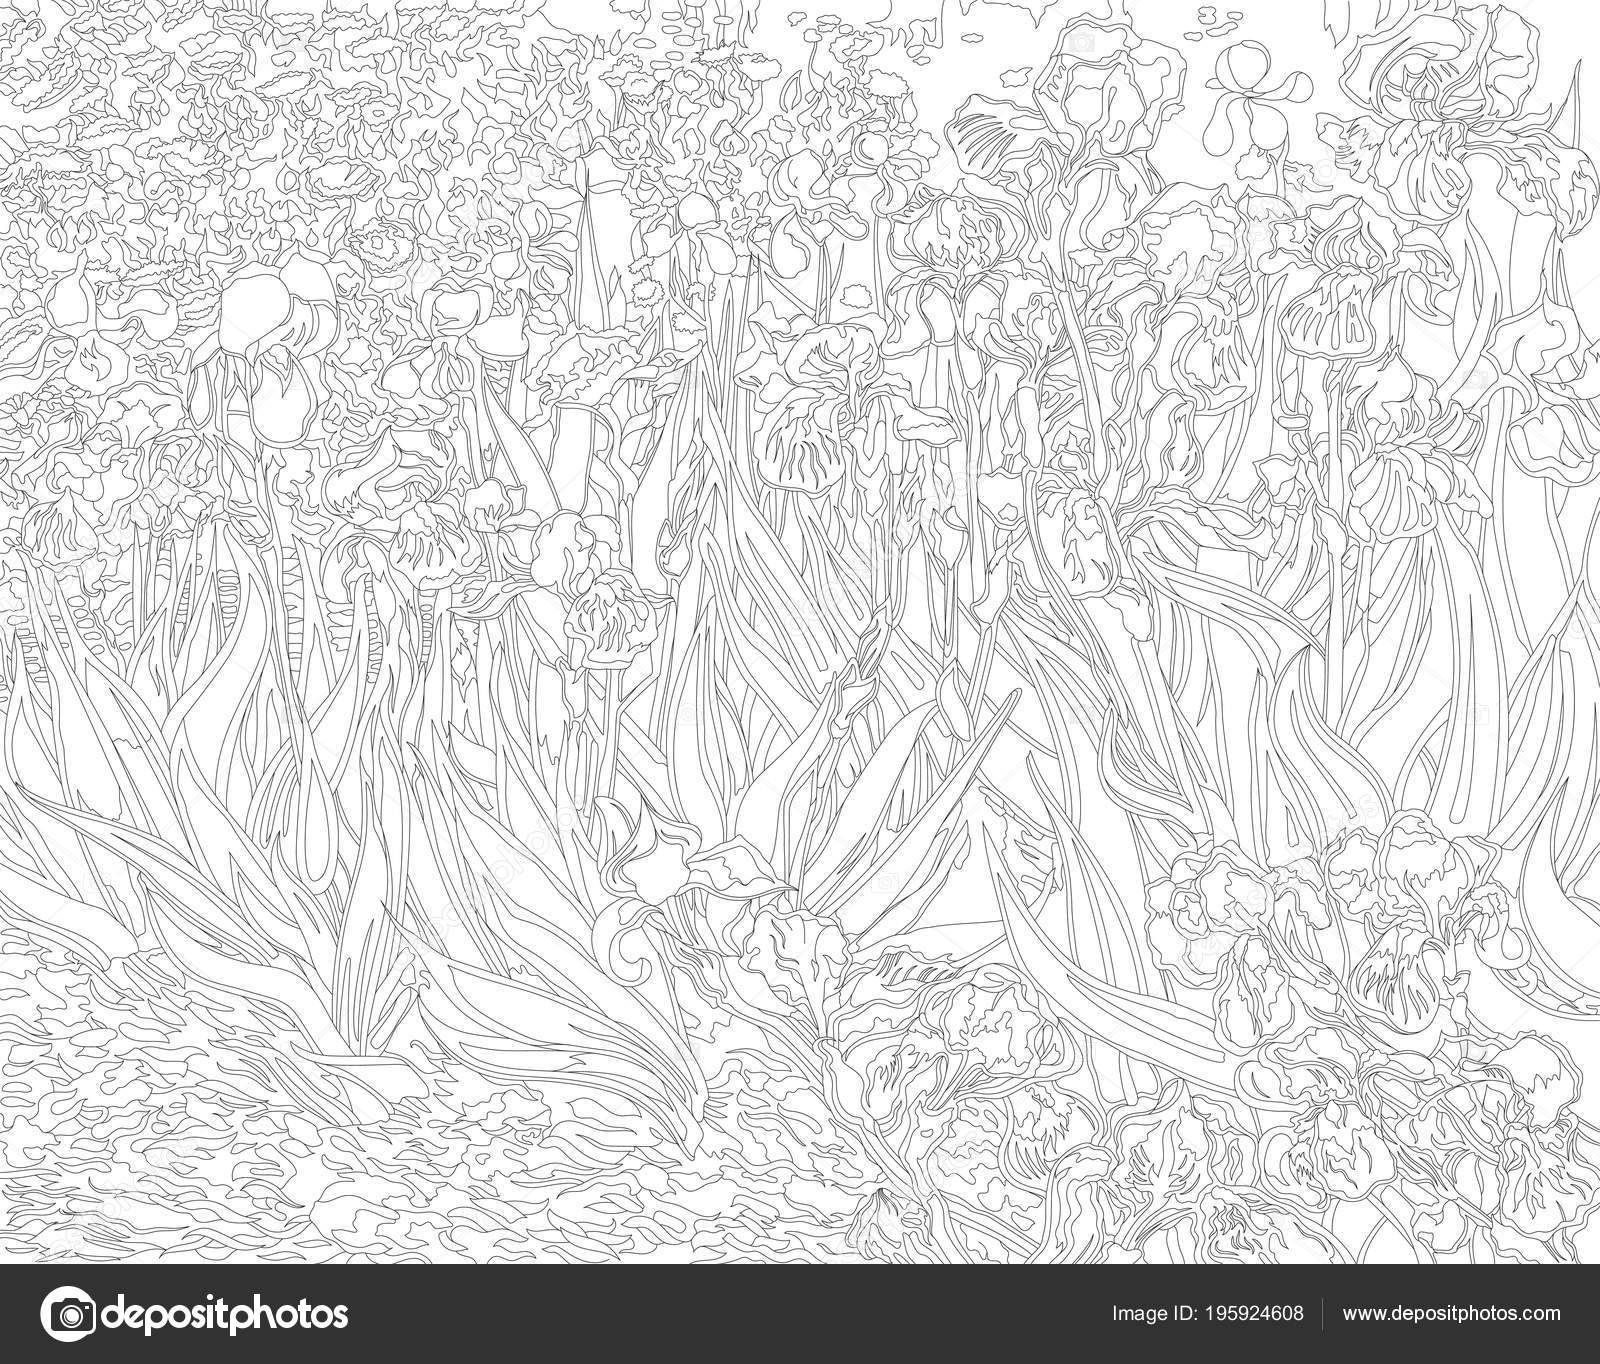 Irises 1889 Vincent Van Gogh Adult Coloring Page Stock Photo Image By C Rawpixel 195924608